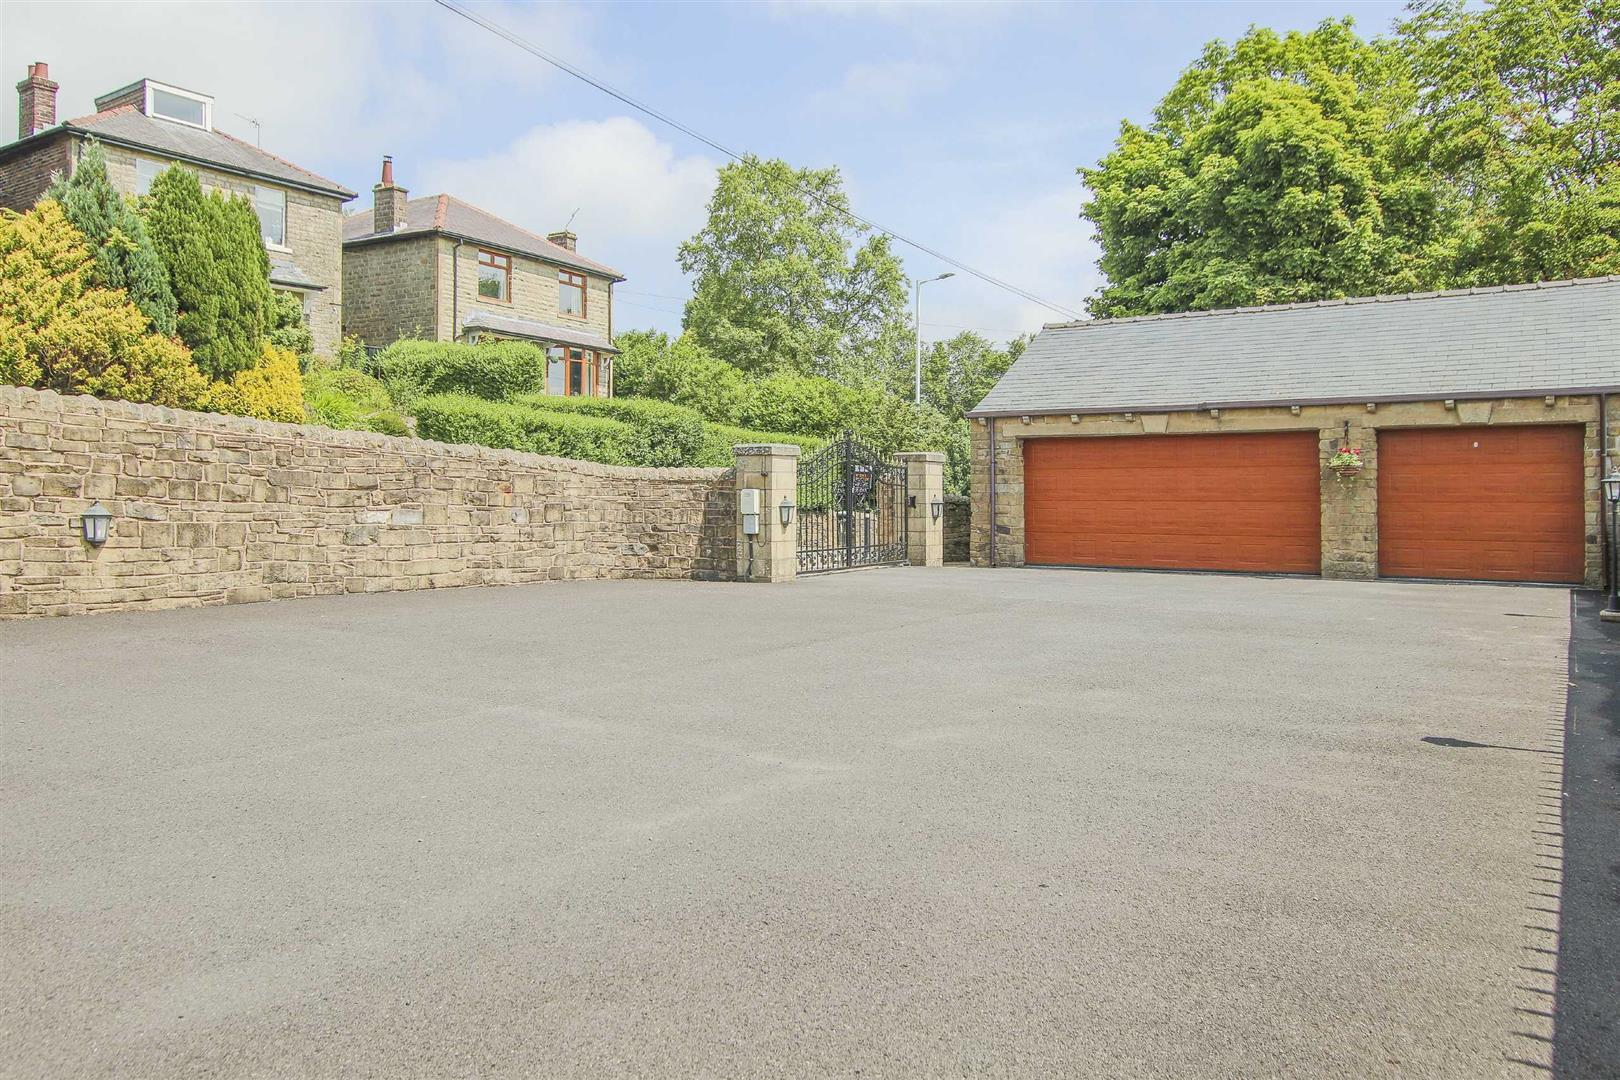 4 Bedroom Barn Conversion For Sale - p033135_49.jpg